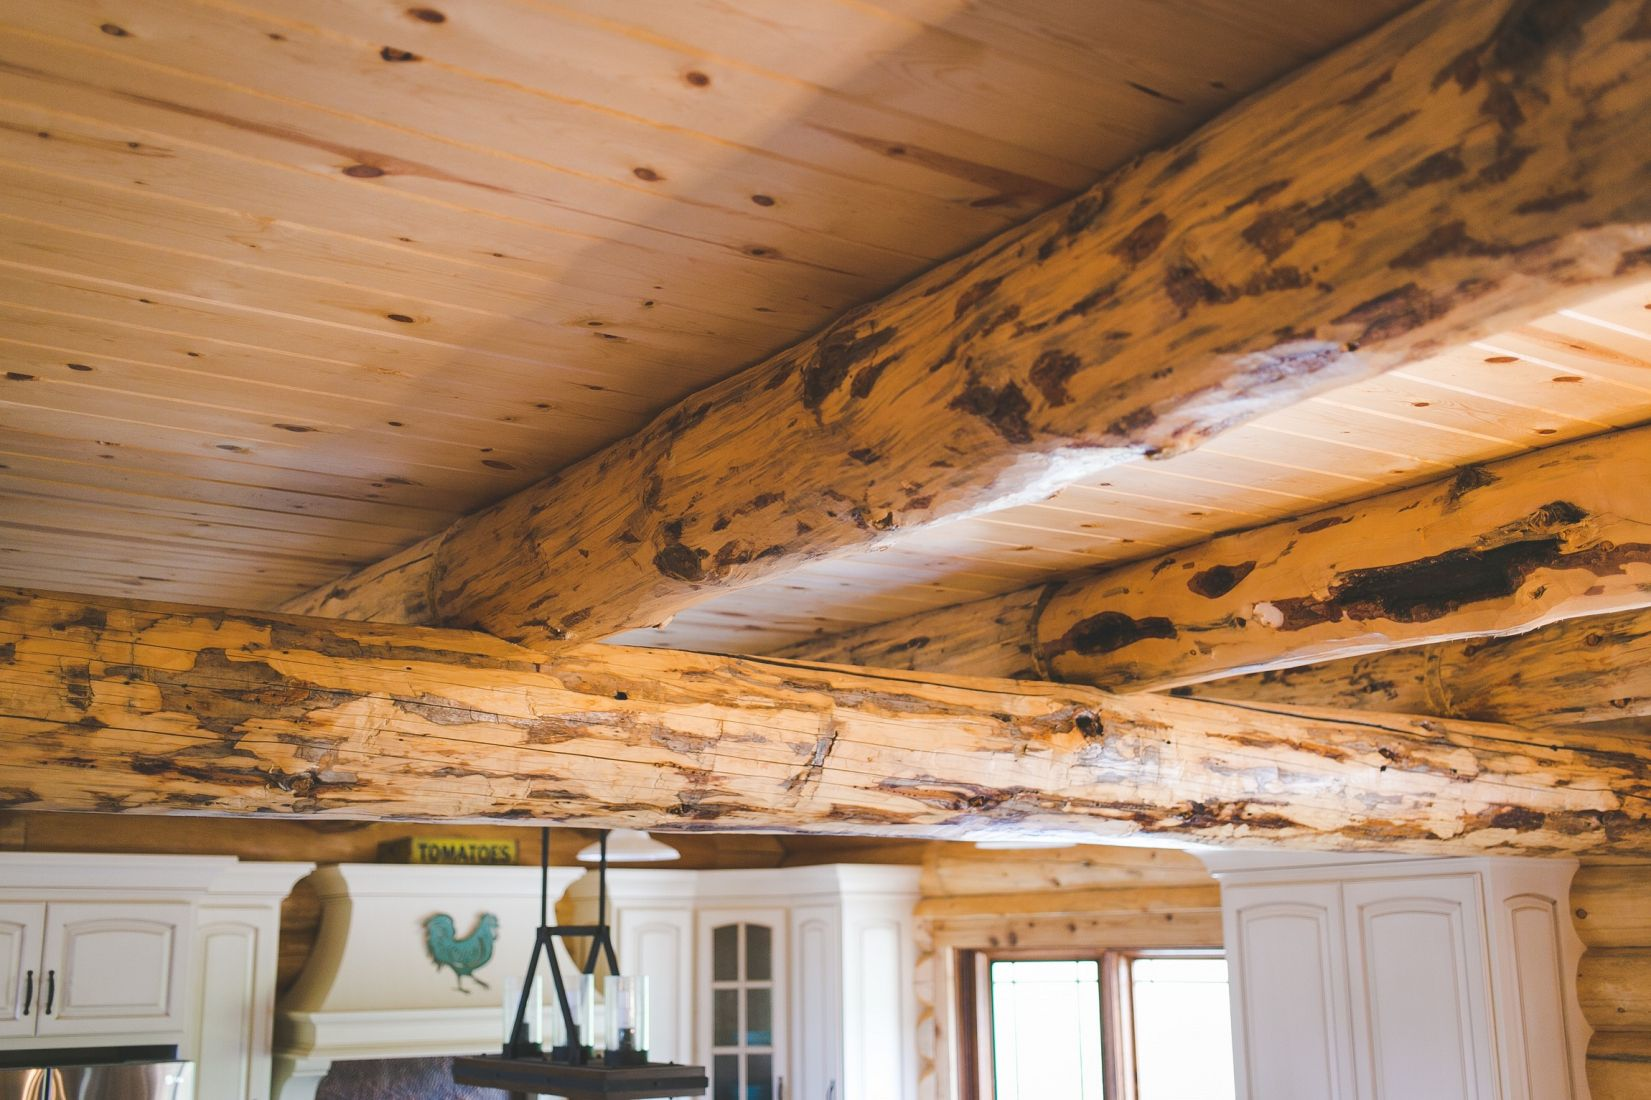 Rustic Log Joists and Rafters